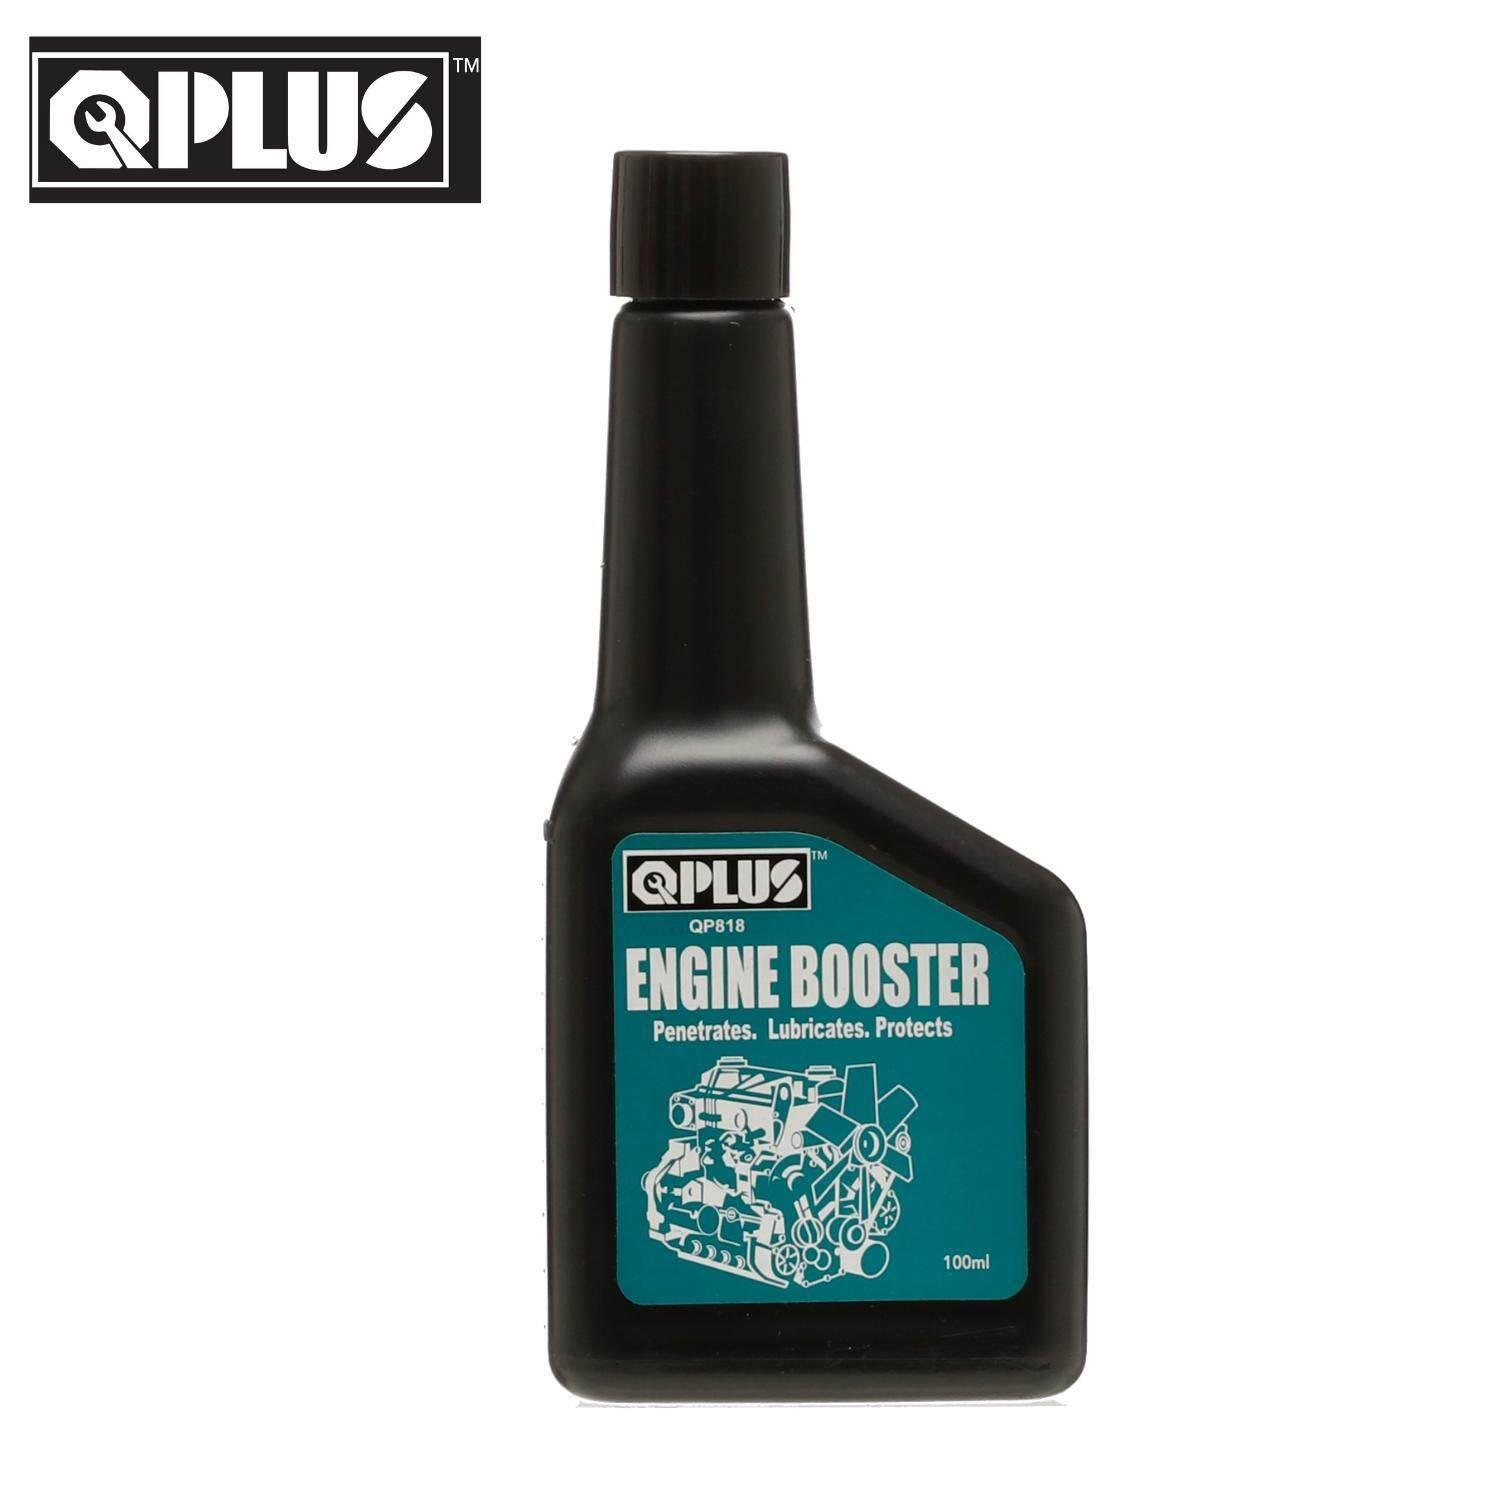 QP818 CAR AND MOTOR ENGINE BOOSTER (100ML) - OIL & LUBRICANT